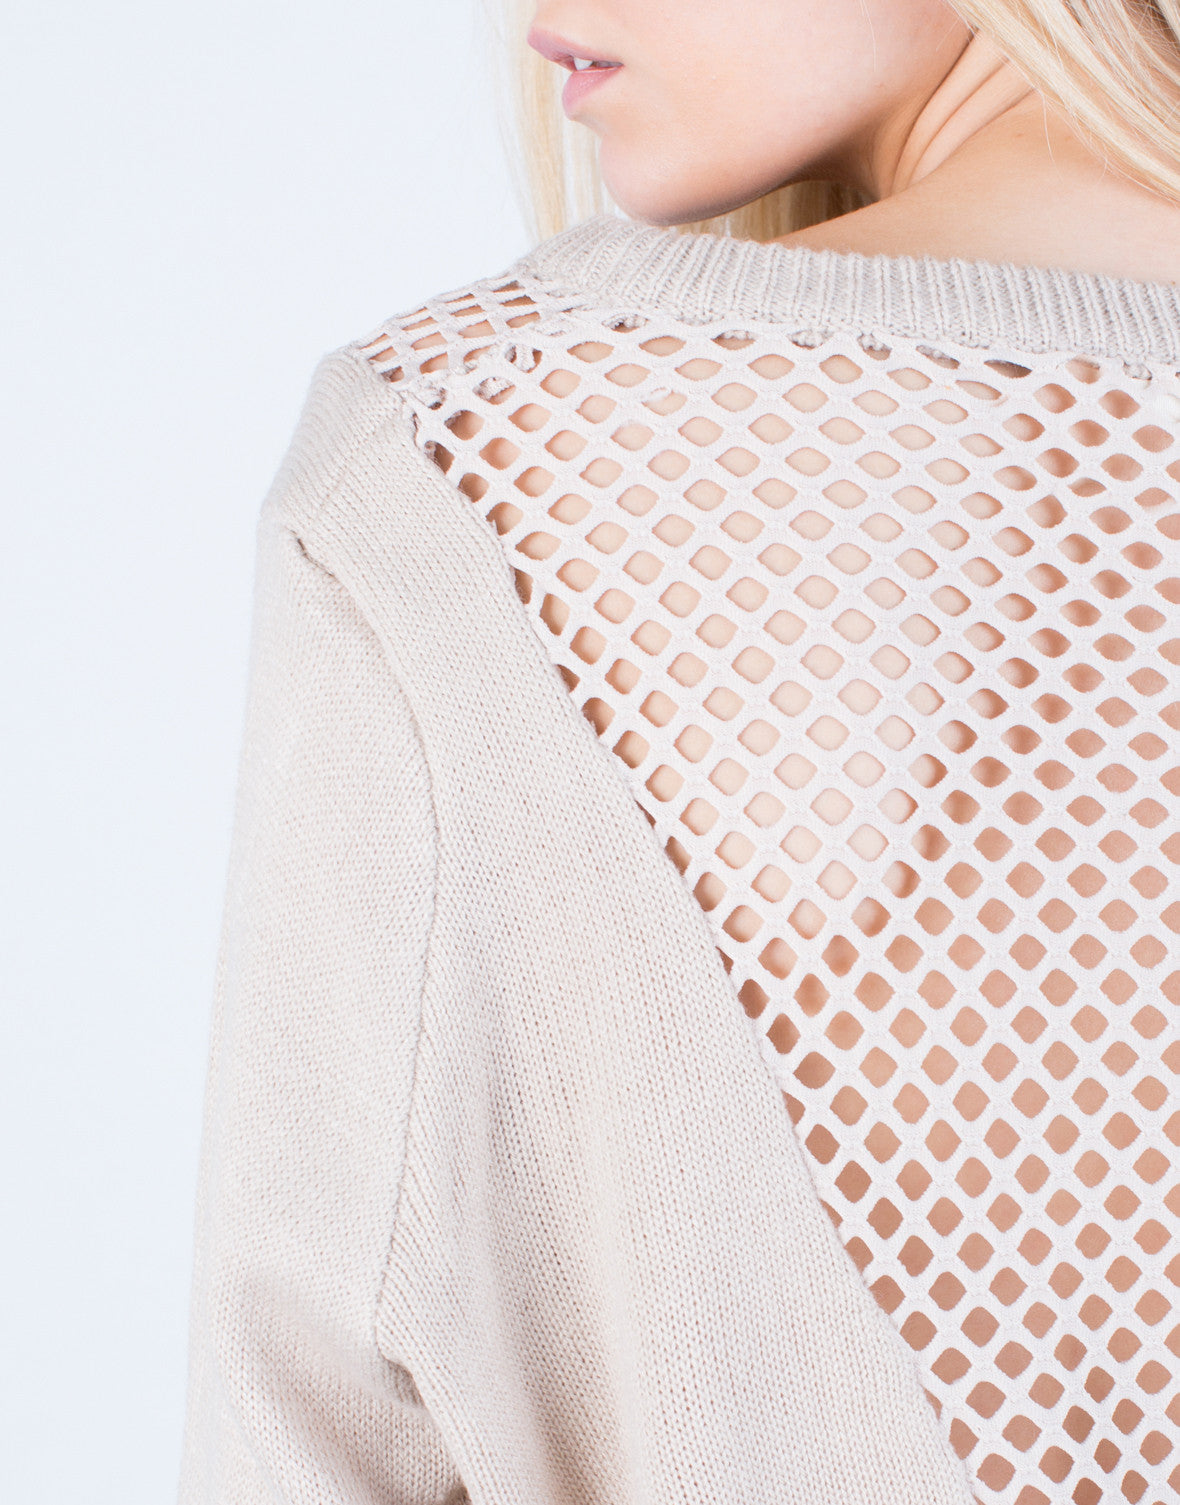 Detail of Perforated Knit Sweater Top